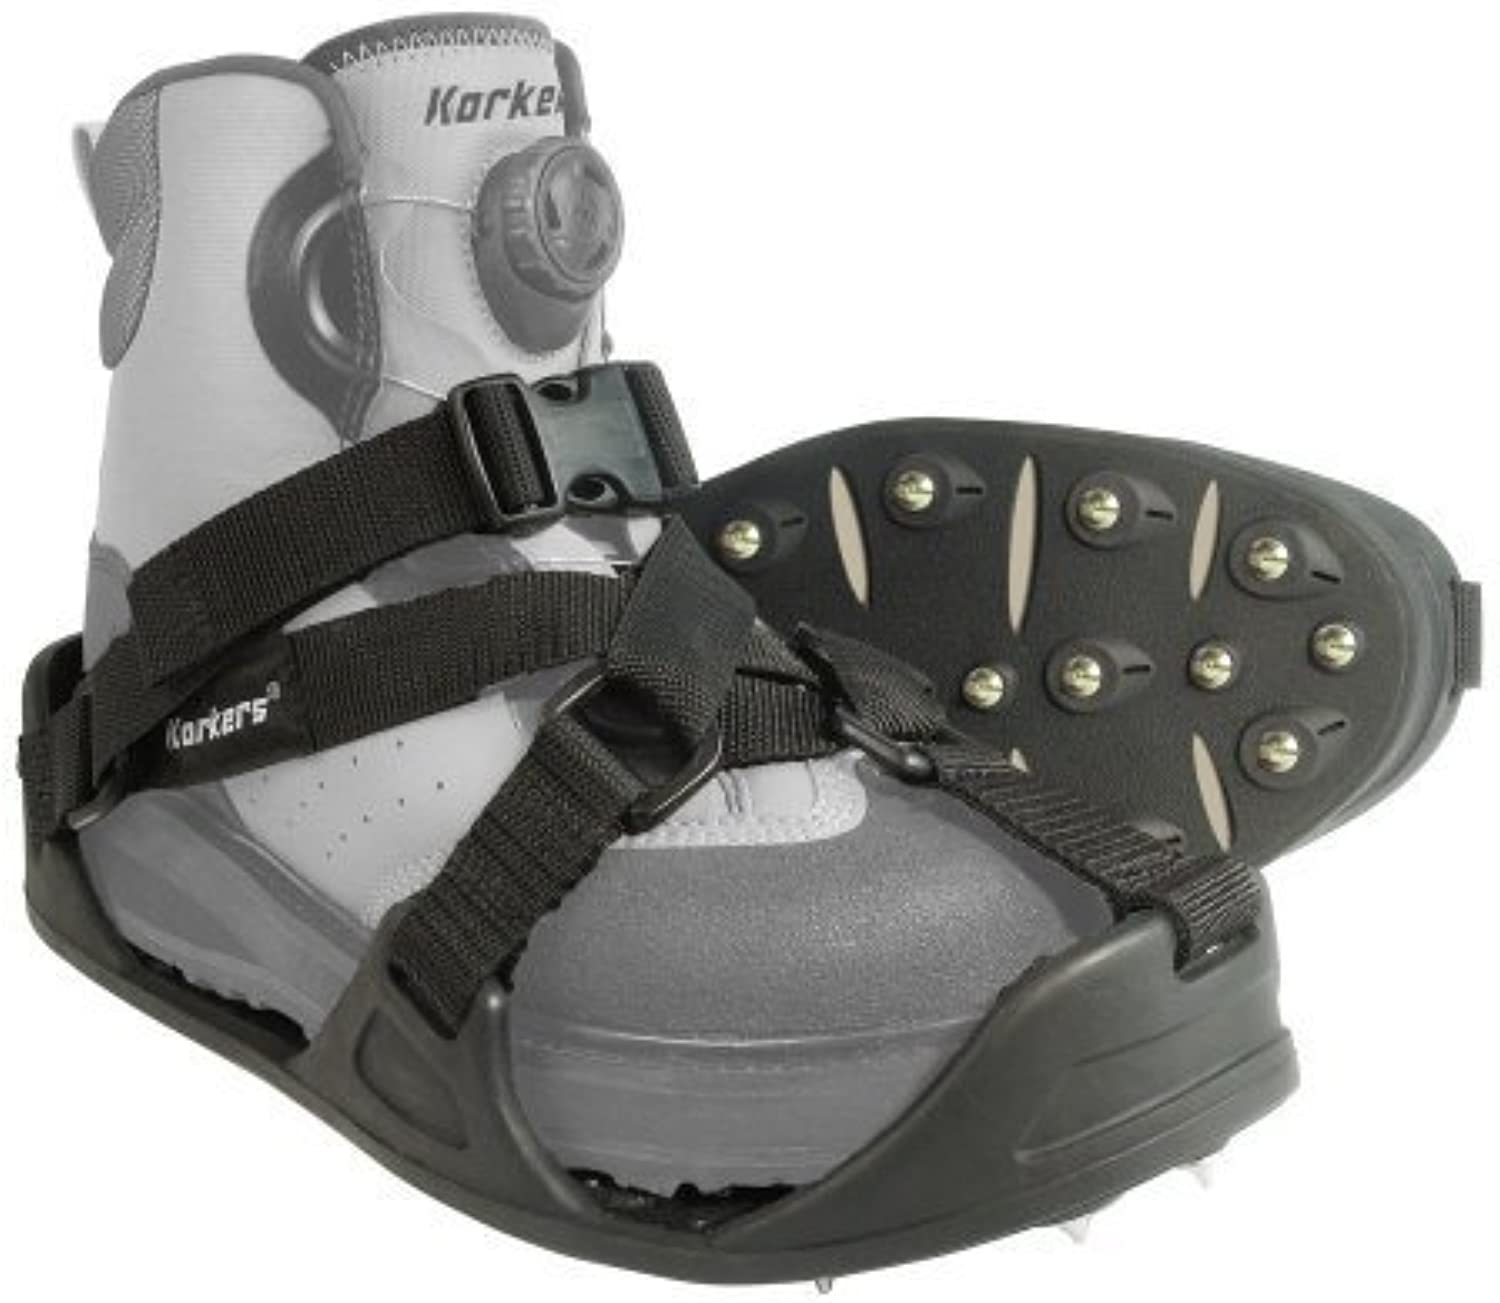 Korkers rocktrax mehr cleated Overschuhe, Large by Korkers